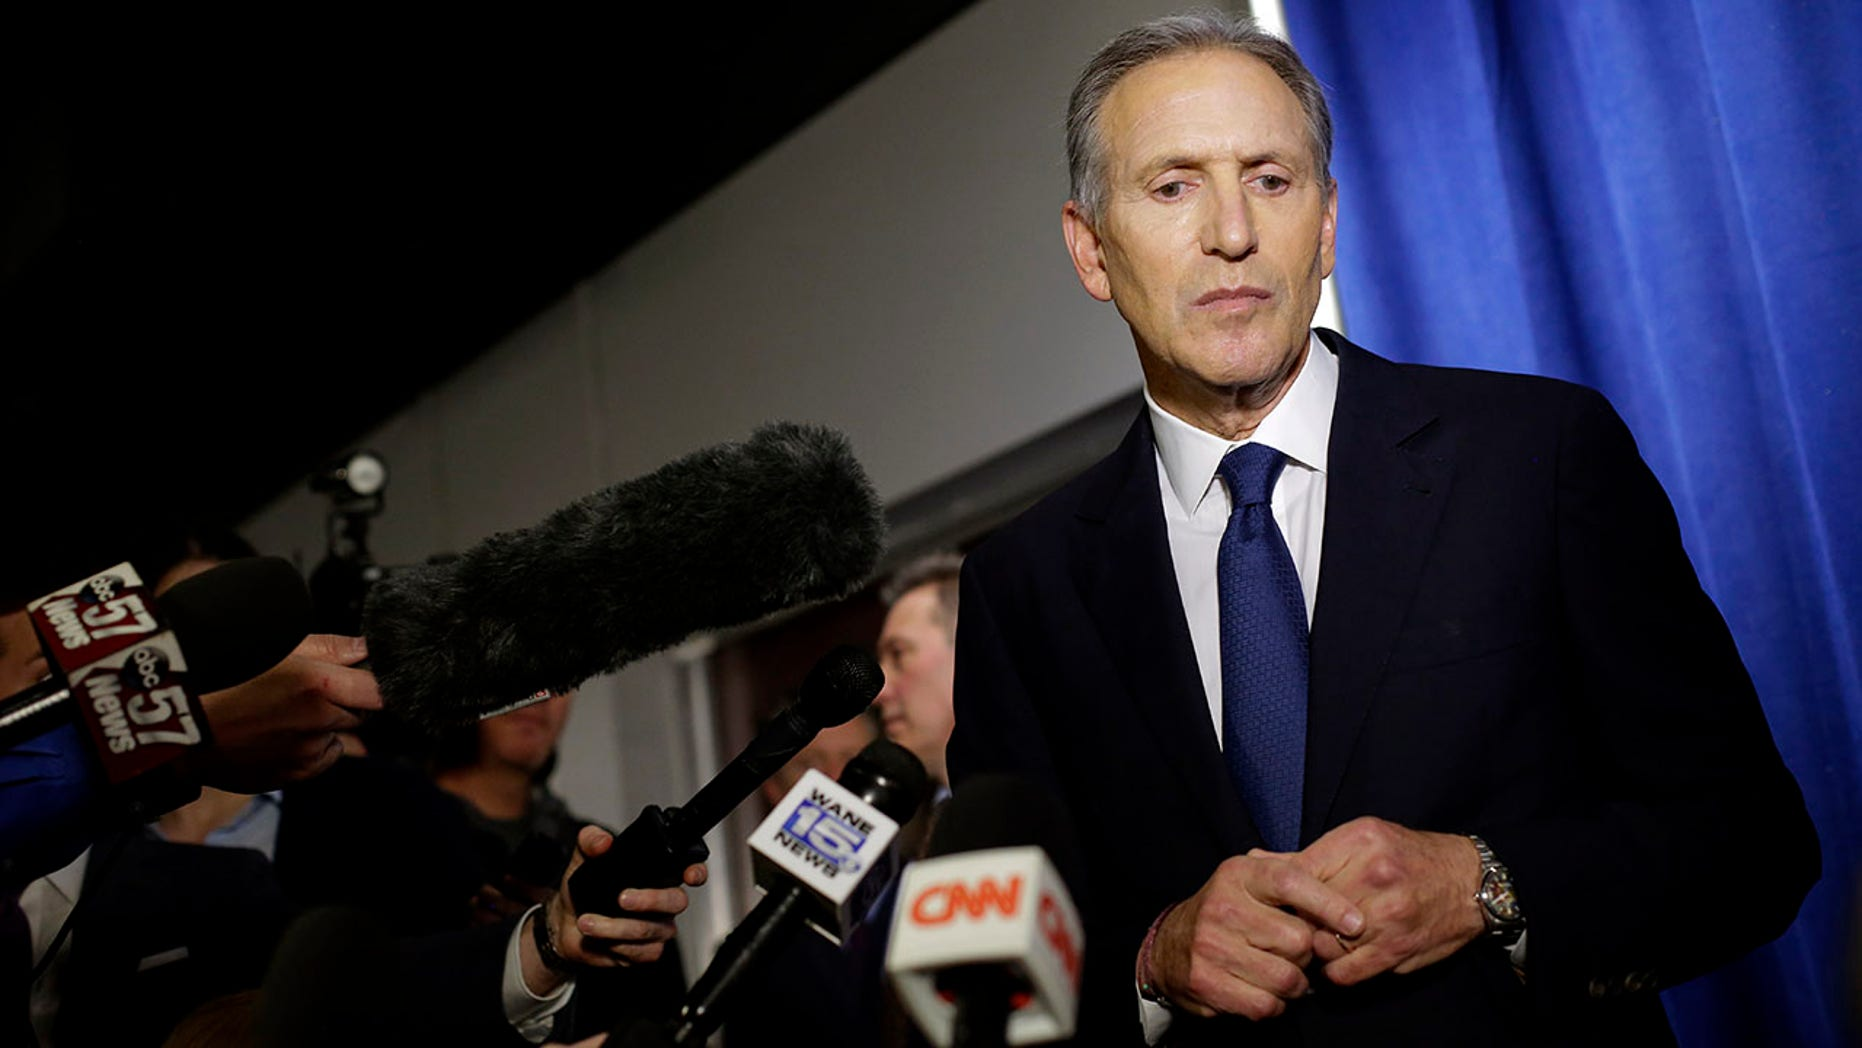 CNN's town hall event with Howard Schultz finished behind Fox News and MSNBC on Tuesday.